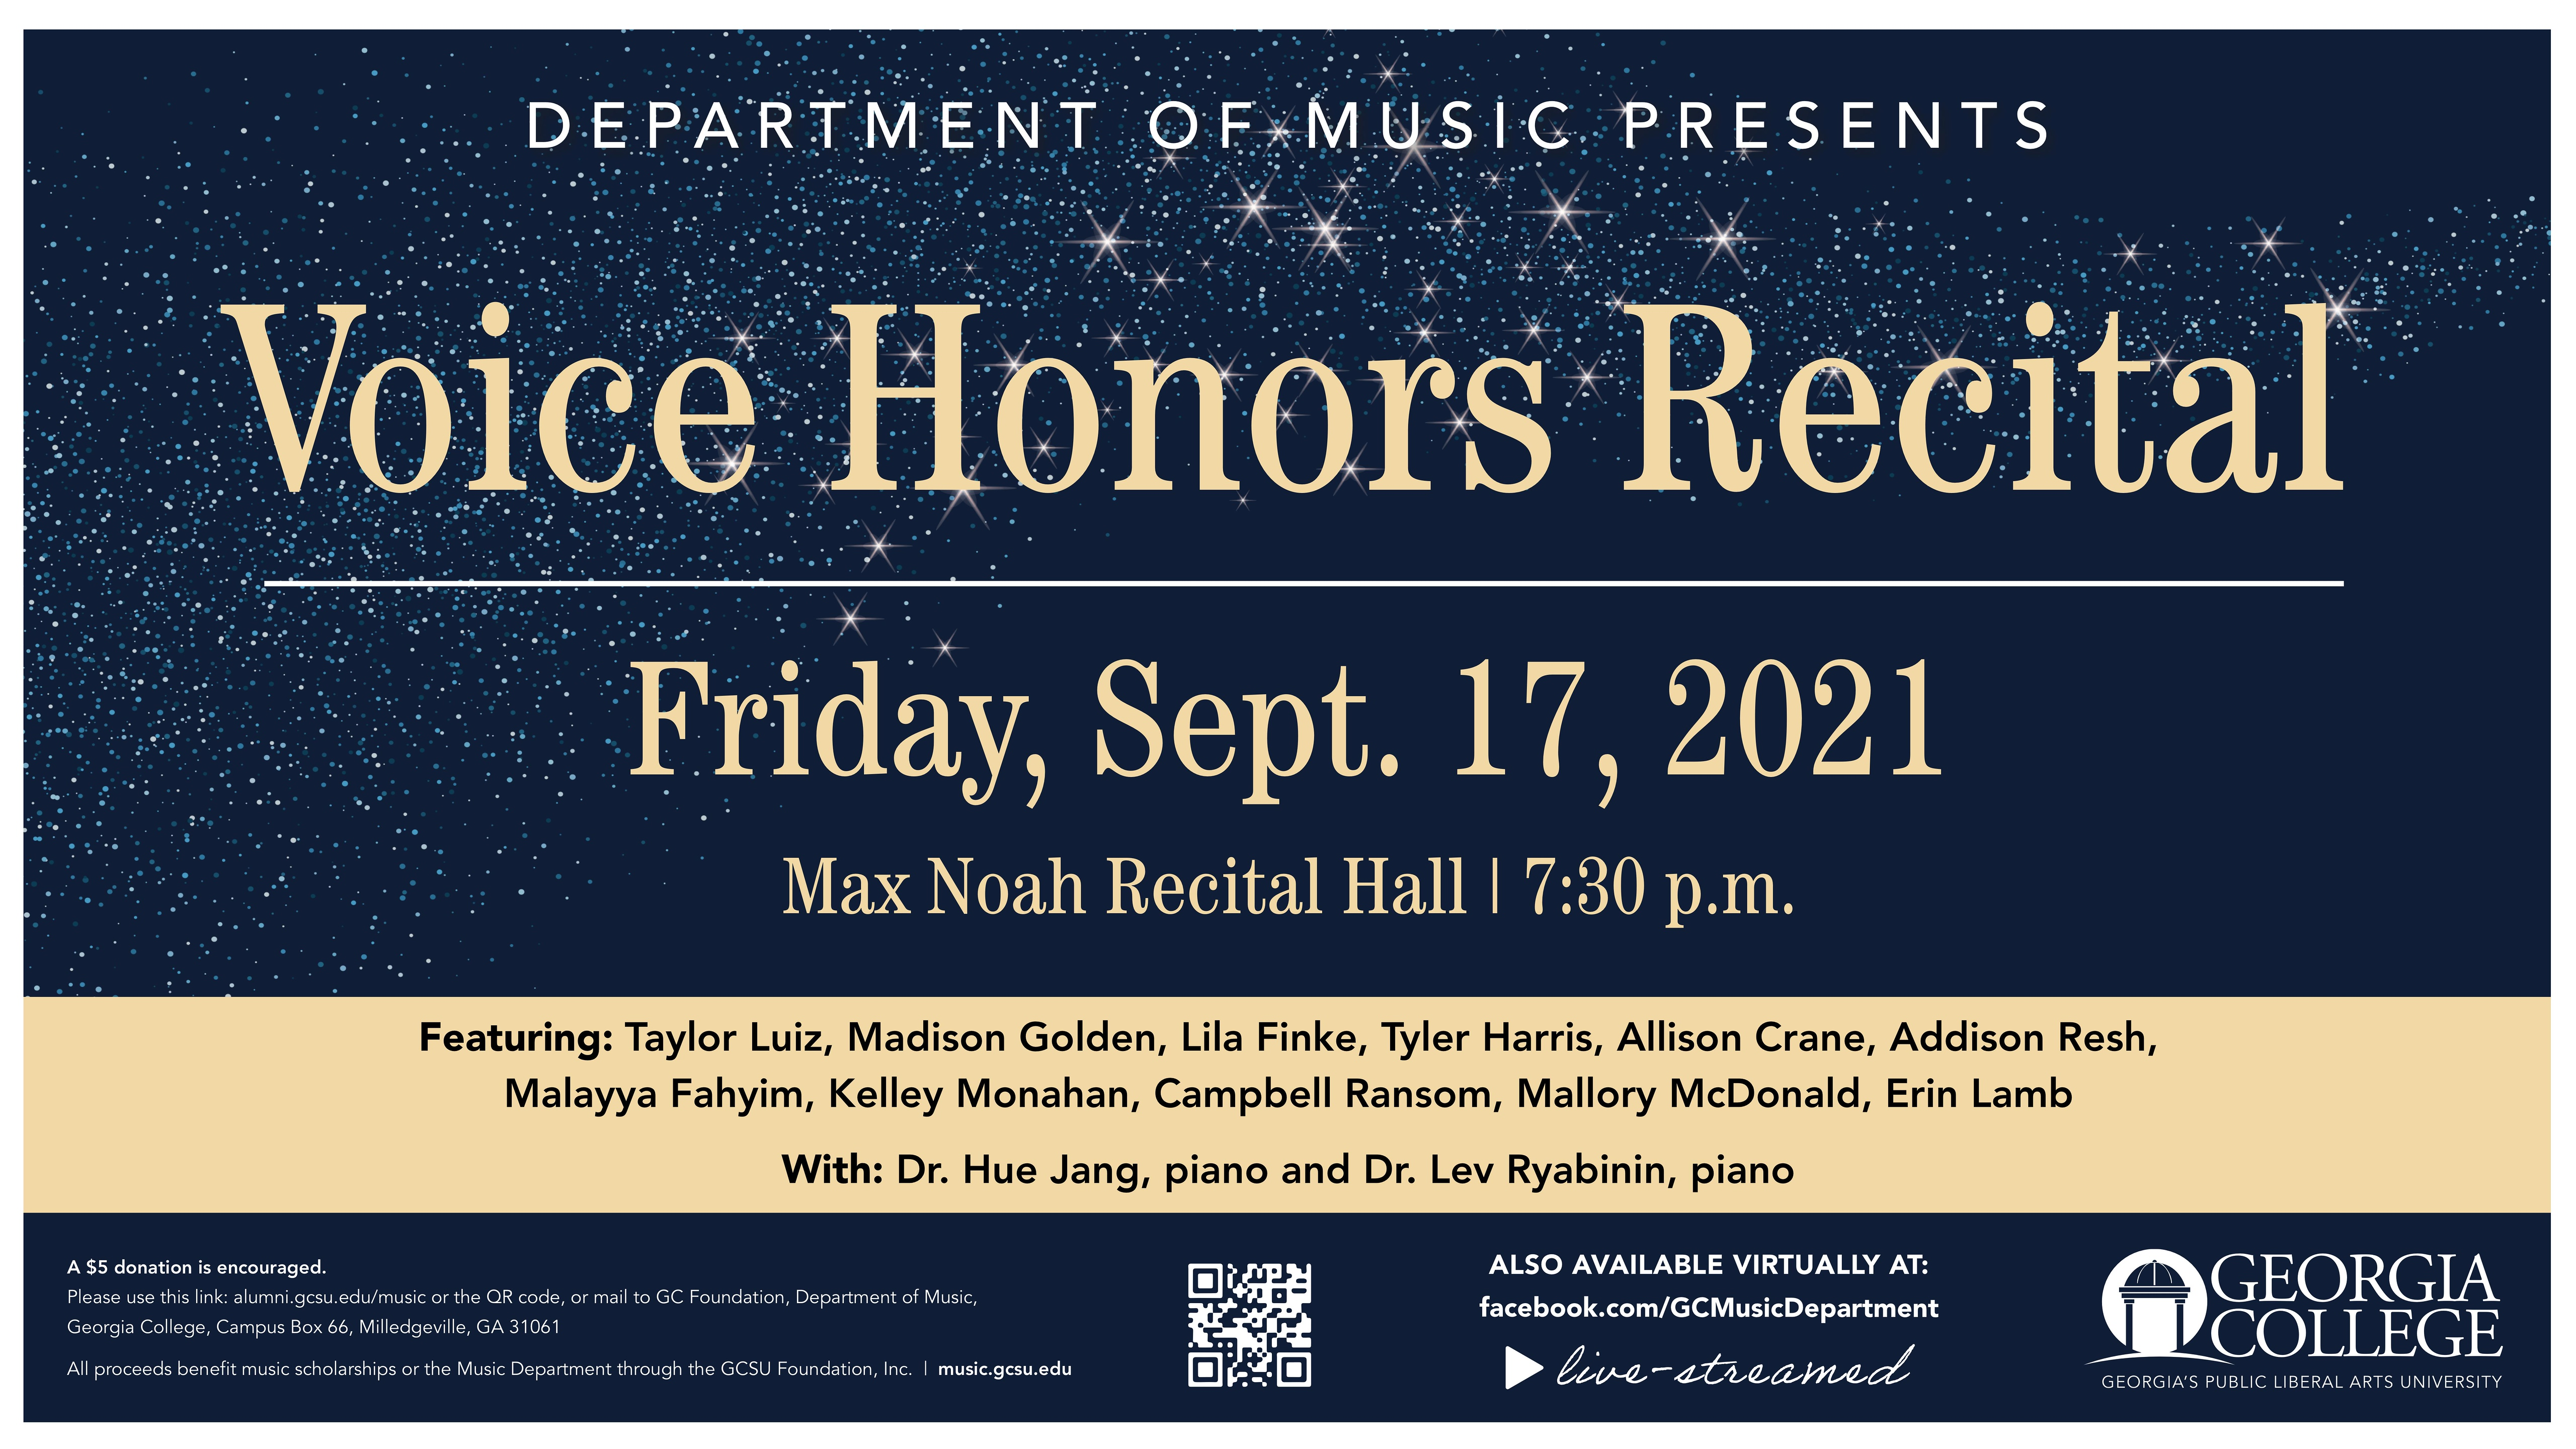 Please join us Friday, Sept. 17, 7:30 pm for our Voice Honors Recital.